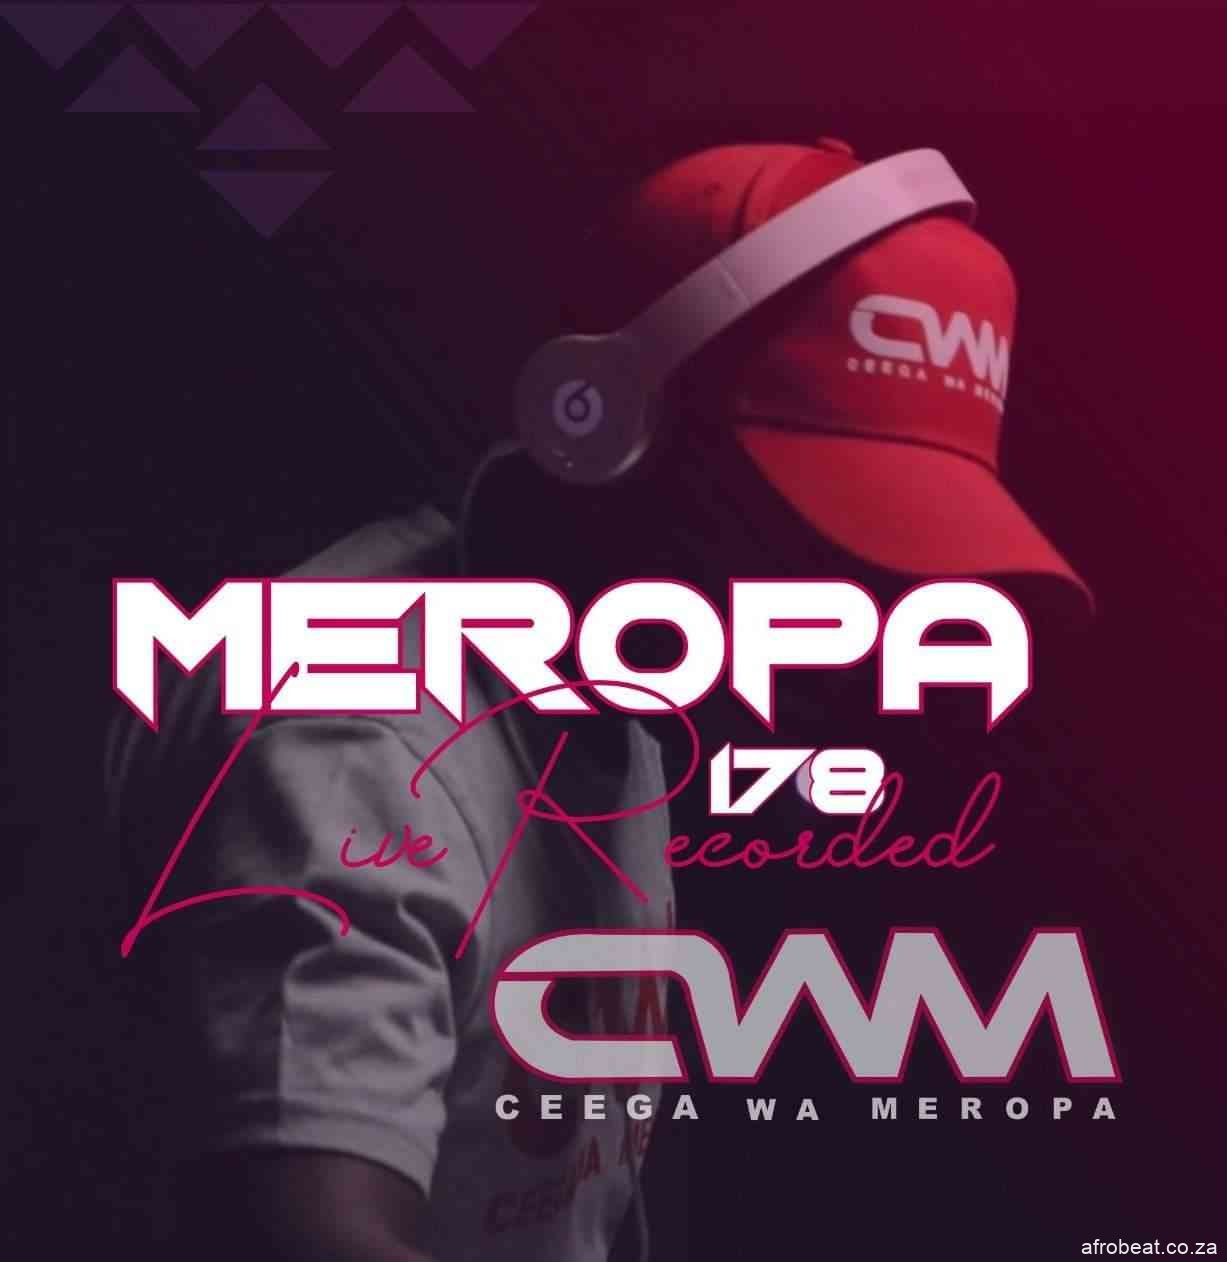 189139498 1733314353514136 897608170542921743 n - Ceega – Meropa 178 Mix (Music Is The Tool To Express Life)